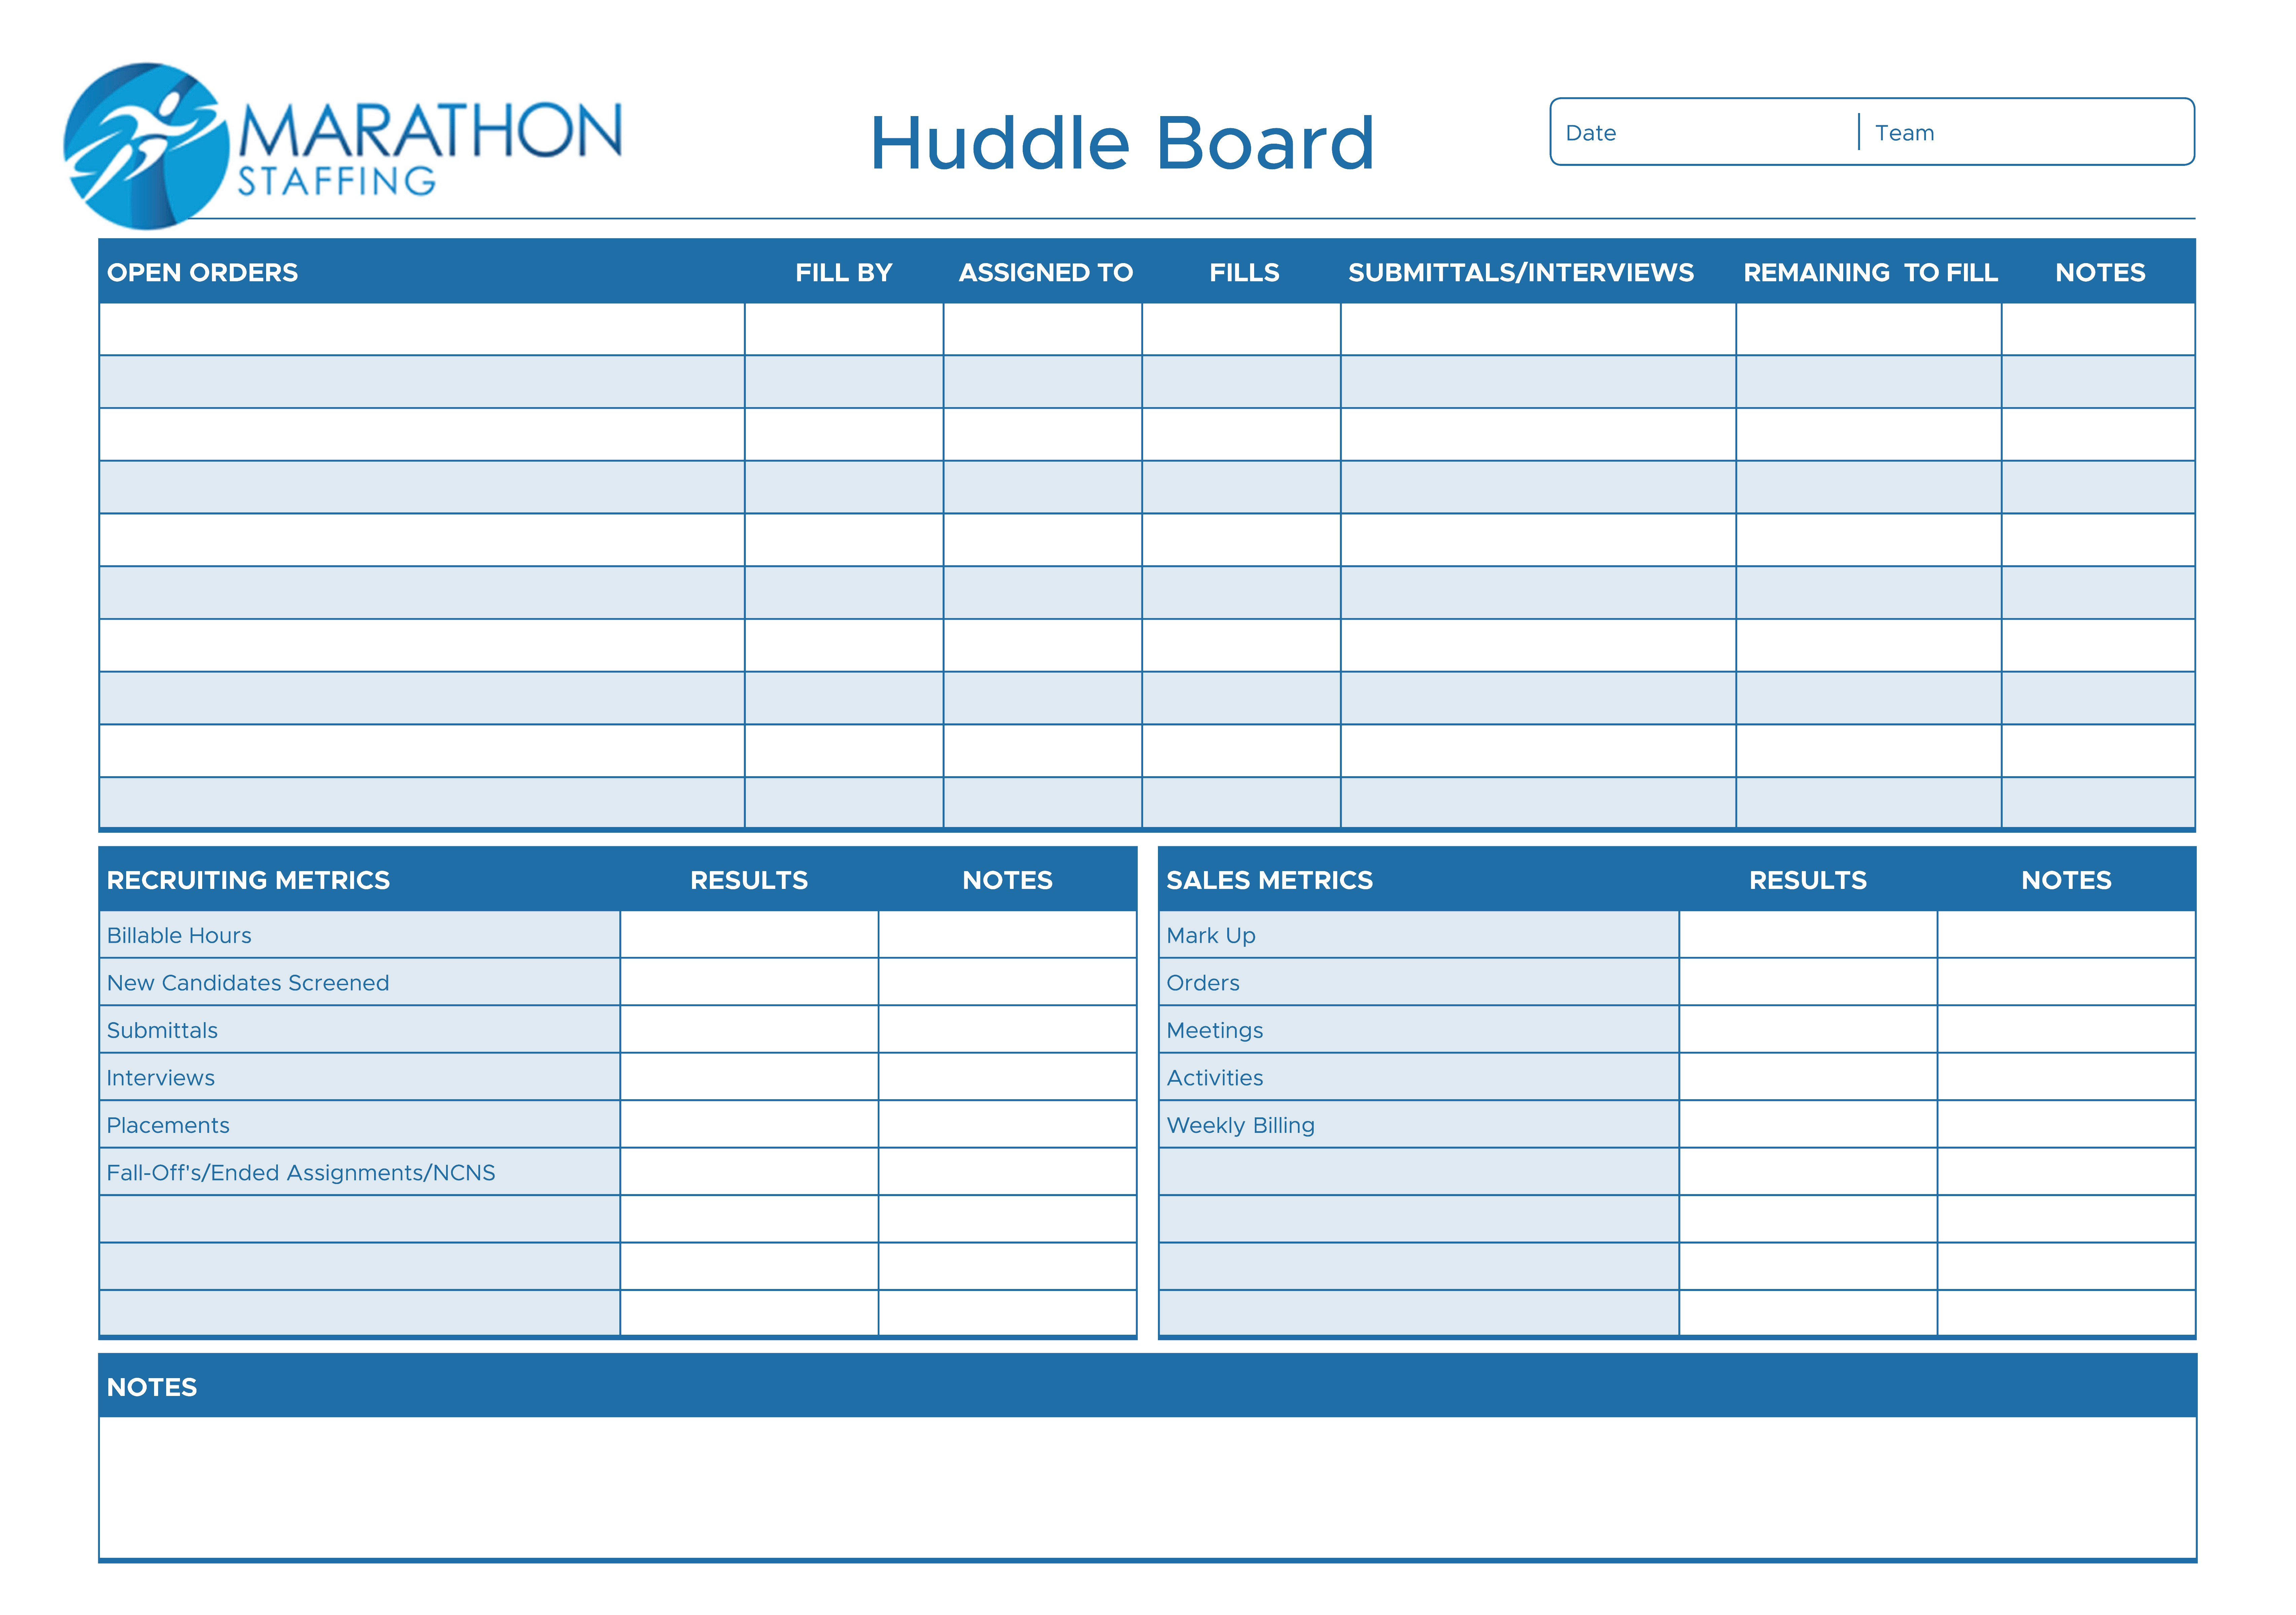 Huddle Board Design Needed for Recruiting Staff